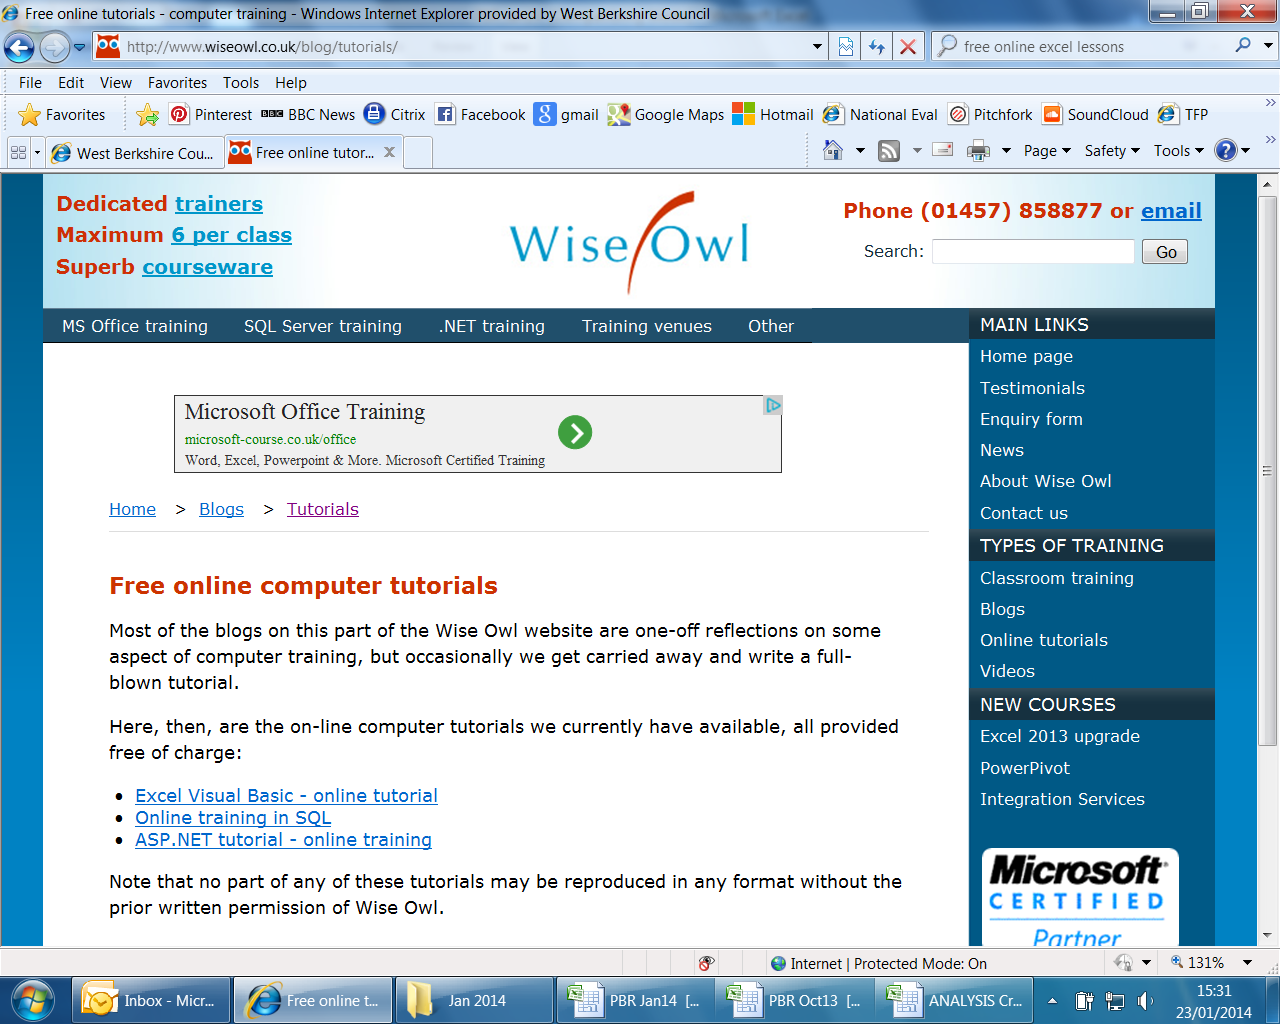 Wise owl is amazing - used it for excel tutorials and it's